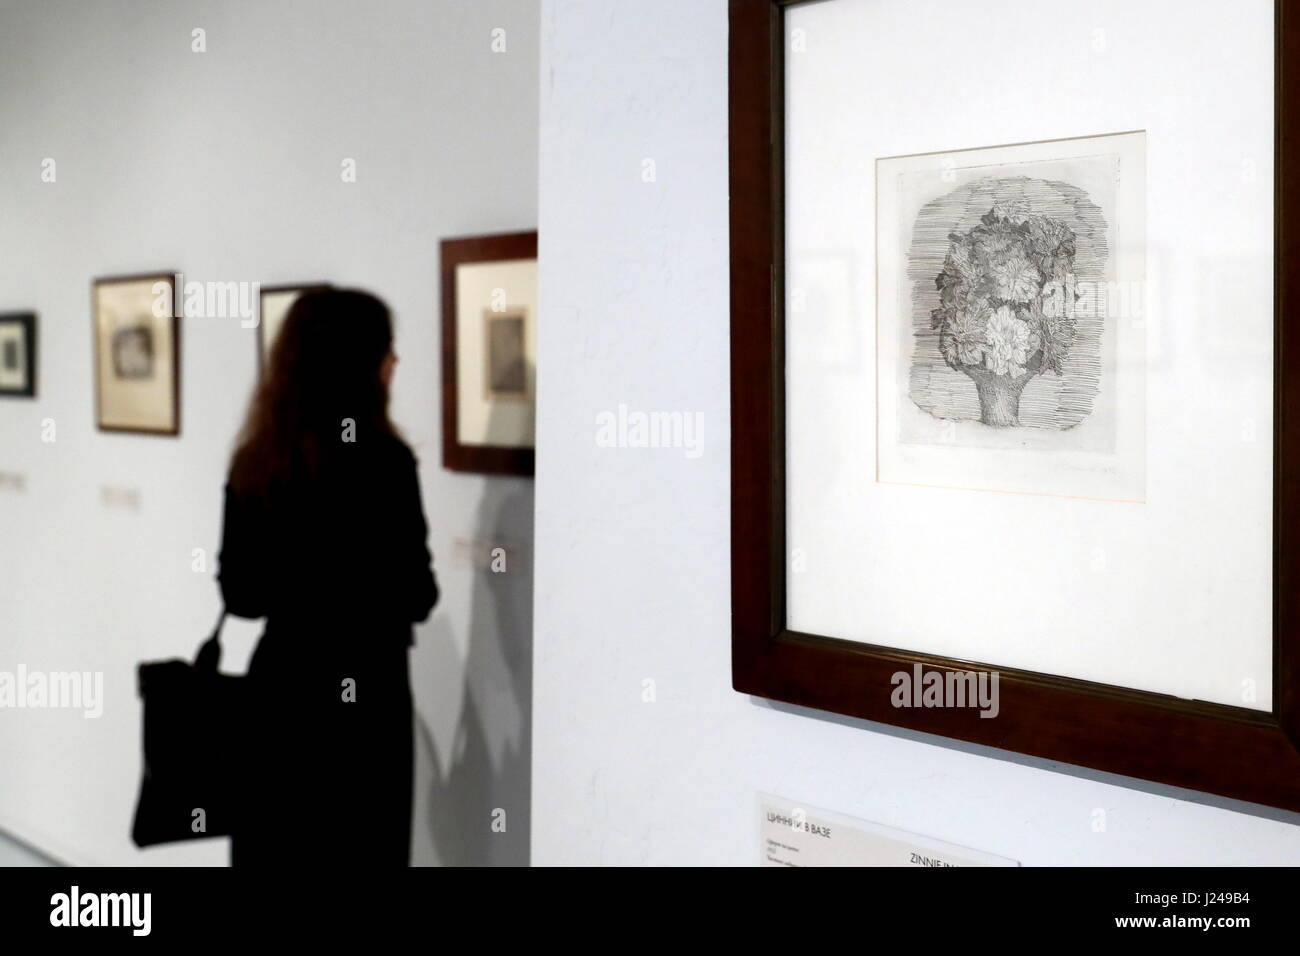 Moscow, Russia. 24th Apr, 2017. Zinnie in un vaso on display at a retrospective exhibition of works by Italian painter - Stock Image